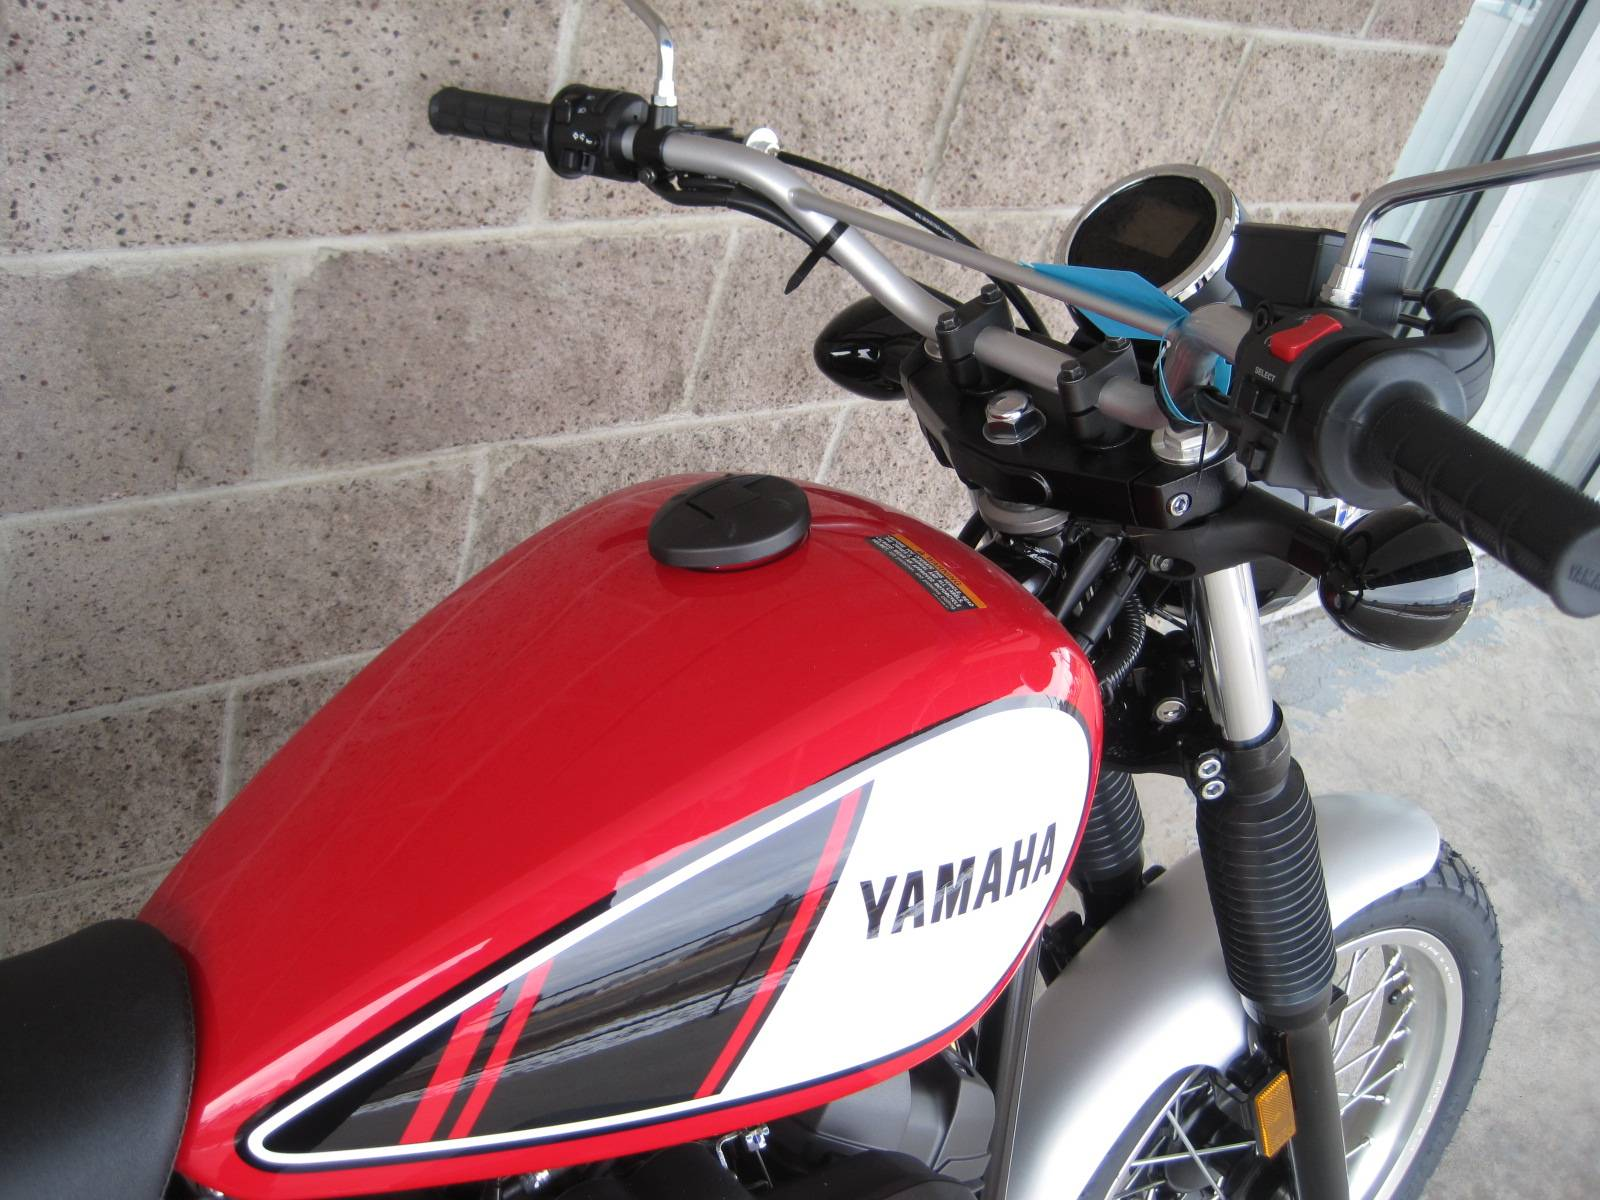 2017 Yamaha SCR950 in Denver, Colorado